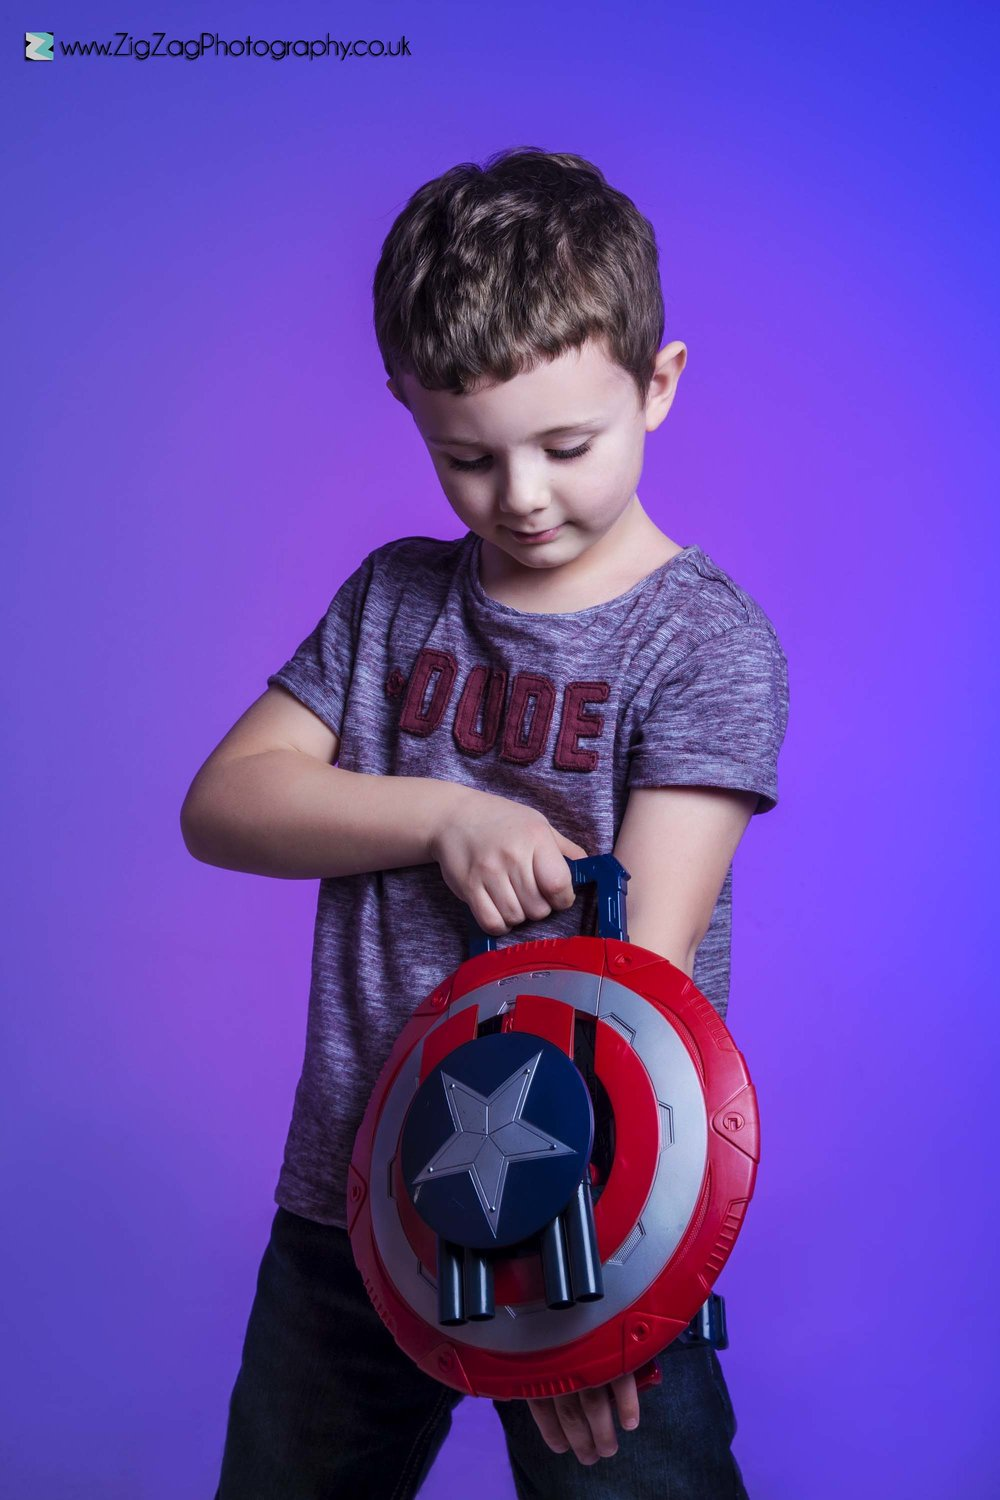 photography-studio-leicester-photoshoot-superhero-boy-captain-america-purple-ideas-props-costume-dress-up.jpg